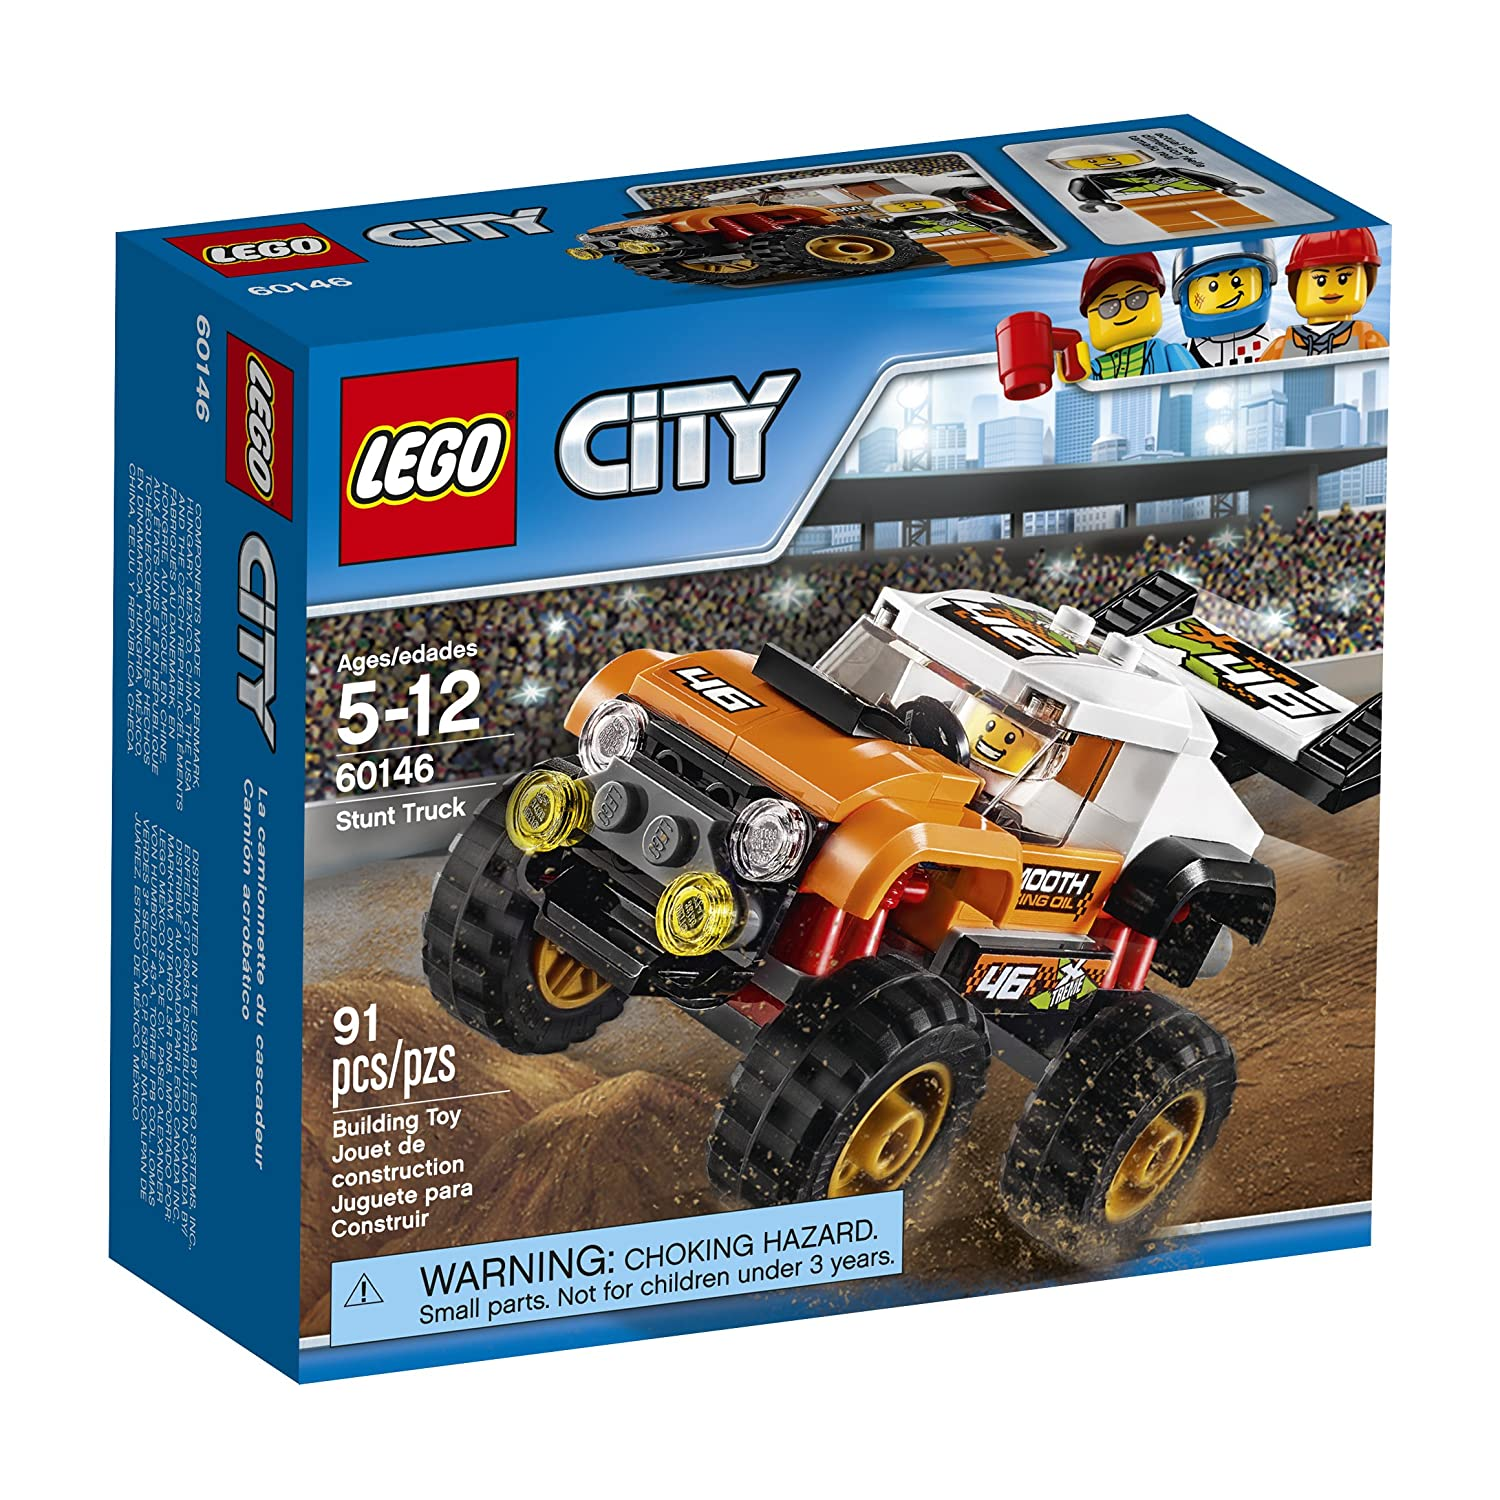 This Will Be A Great Gift For 6 Year Old Boys With Lego Car Collections Or Child Just Starting Their Collection